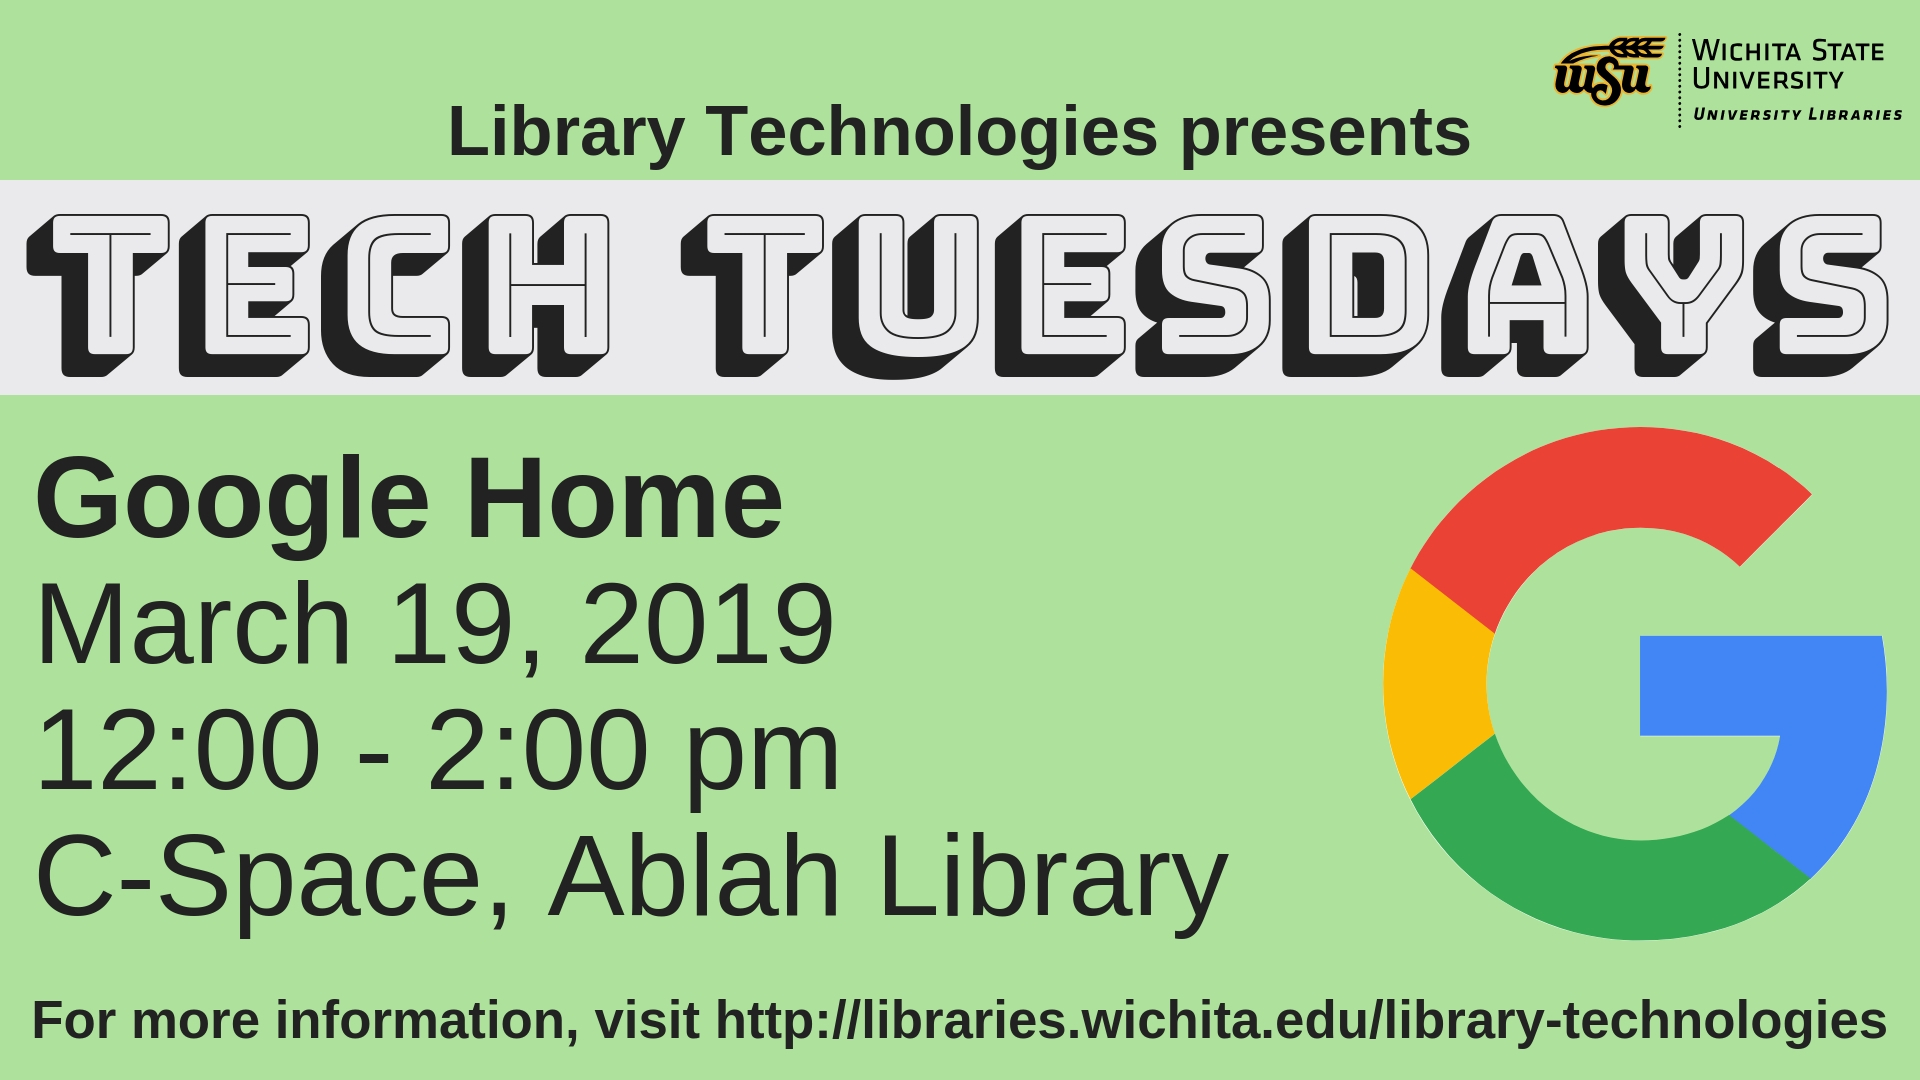 Tech Tuesdays: Google Home